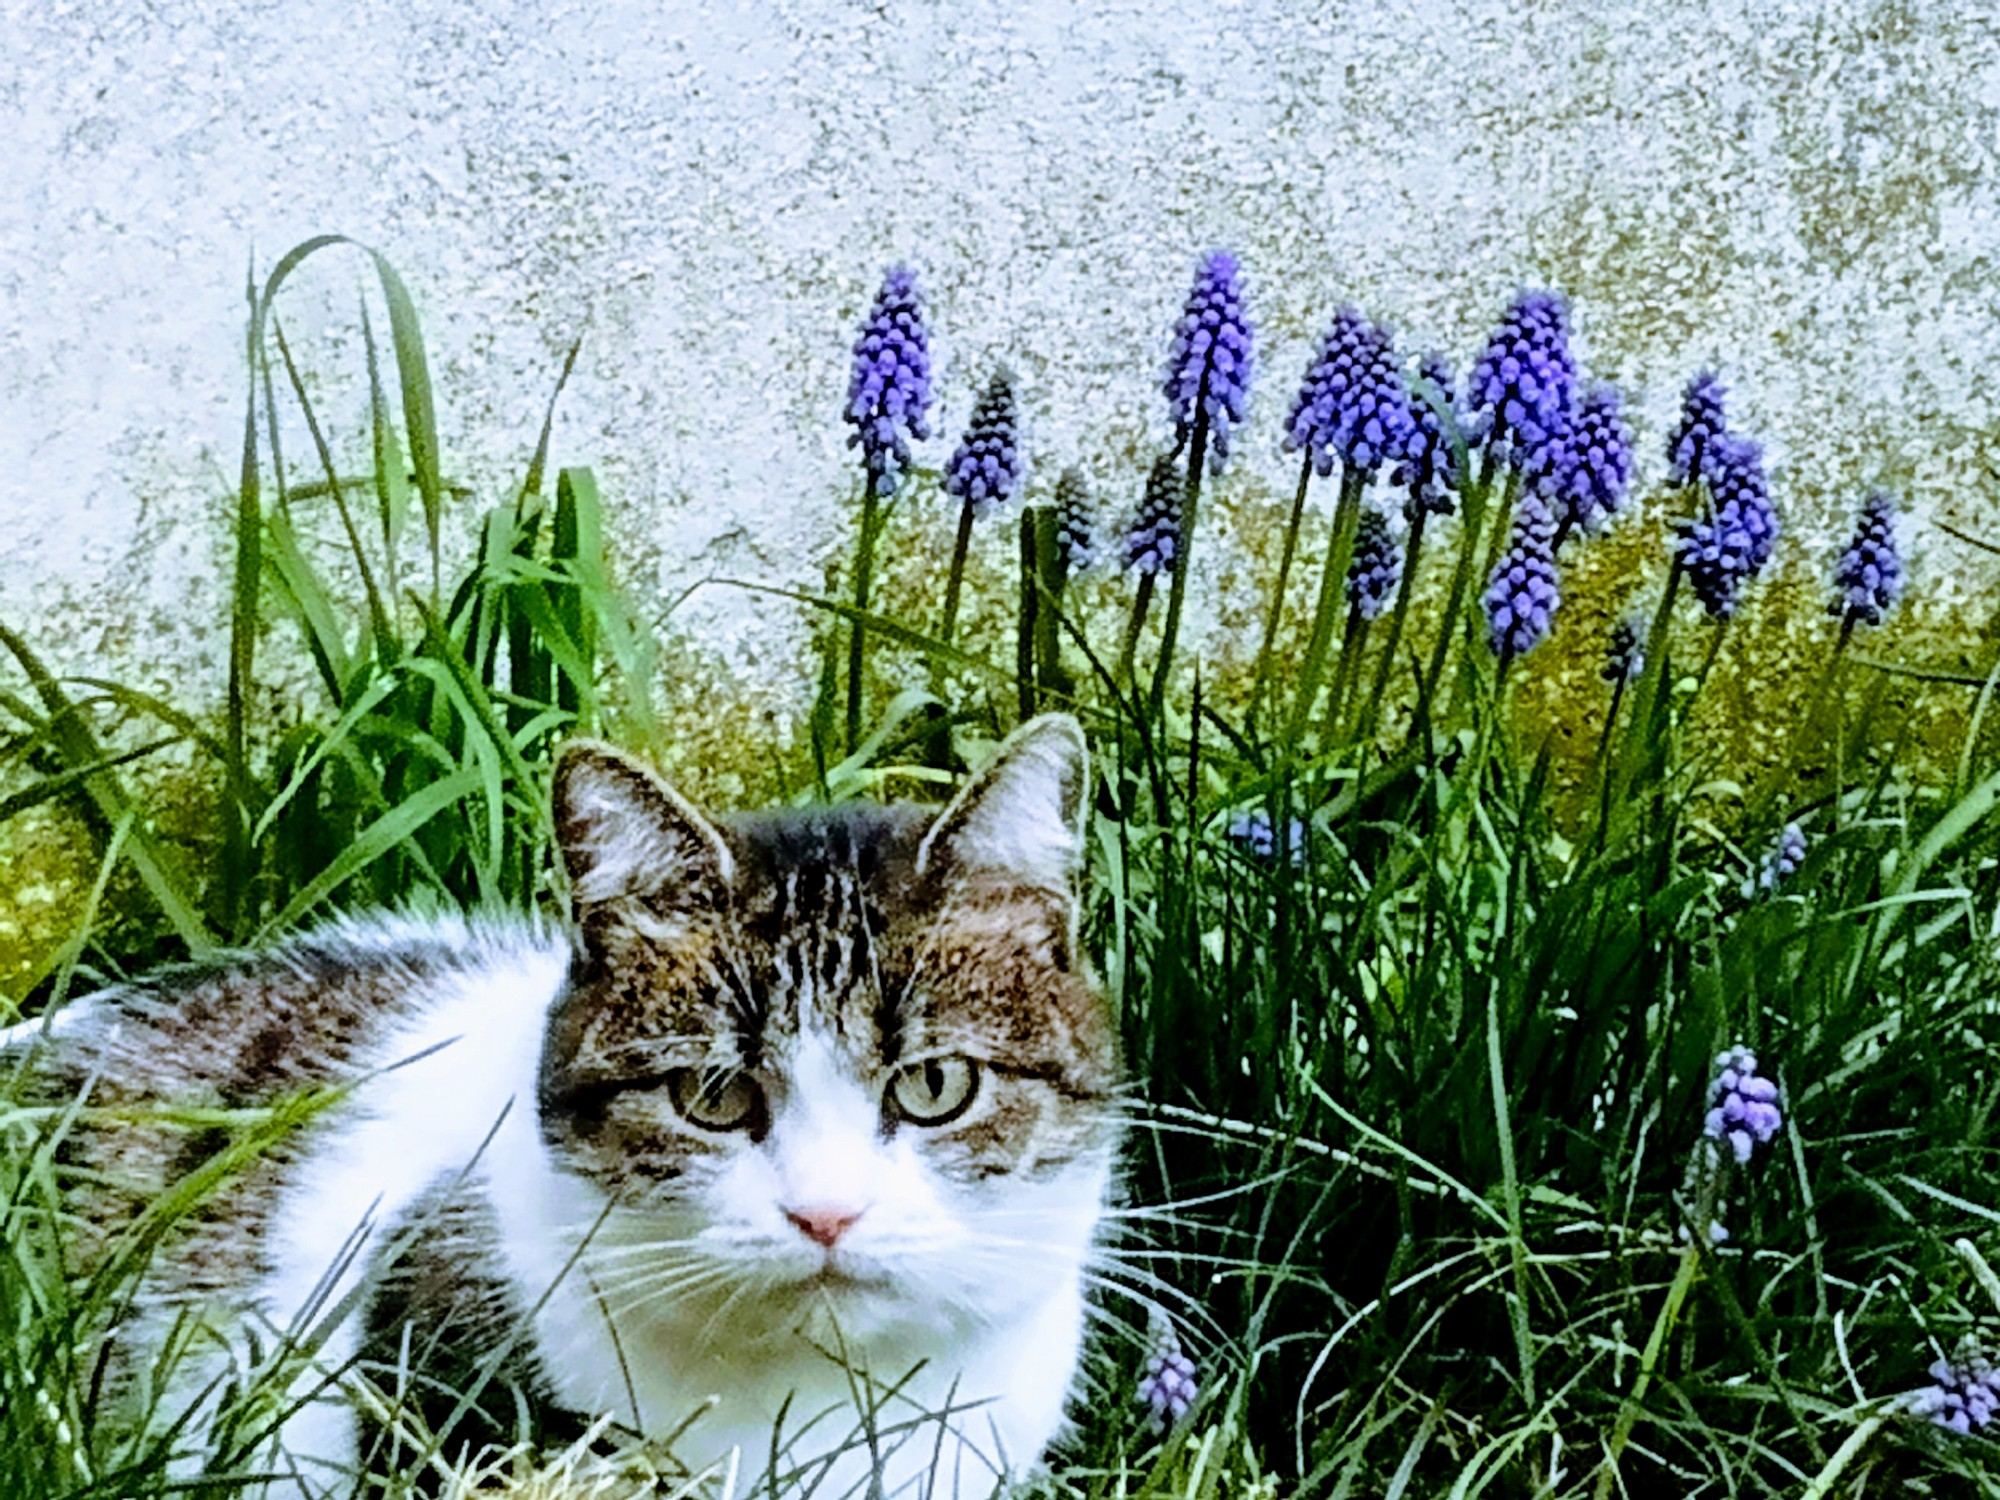 Twinkle the cat with flowers